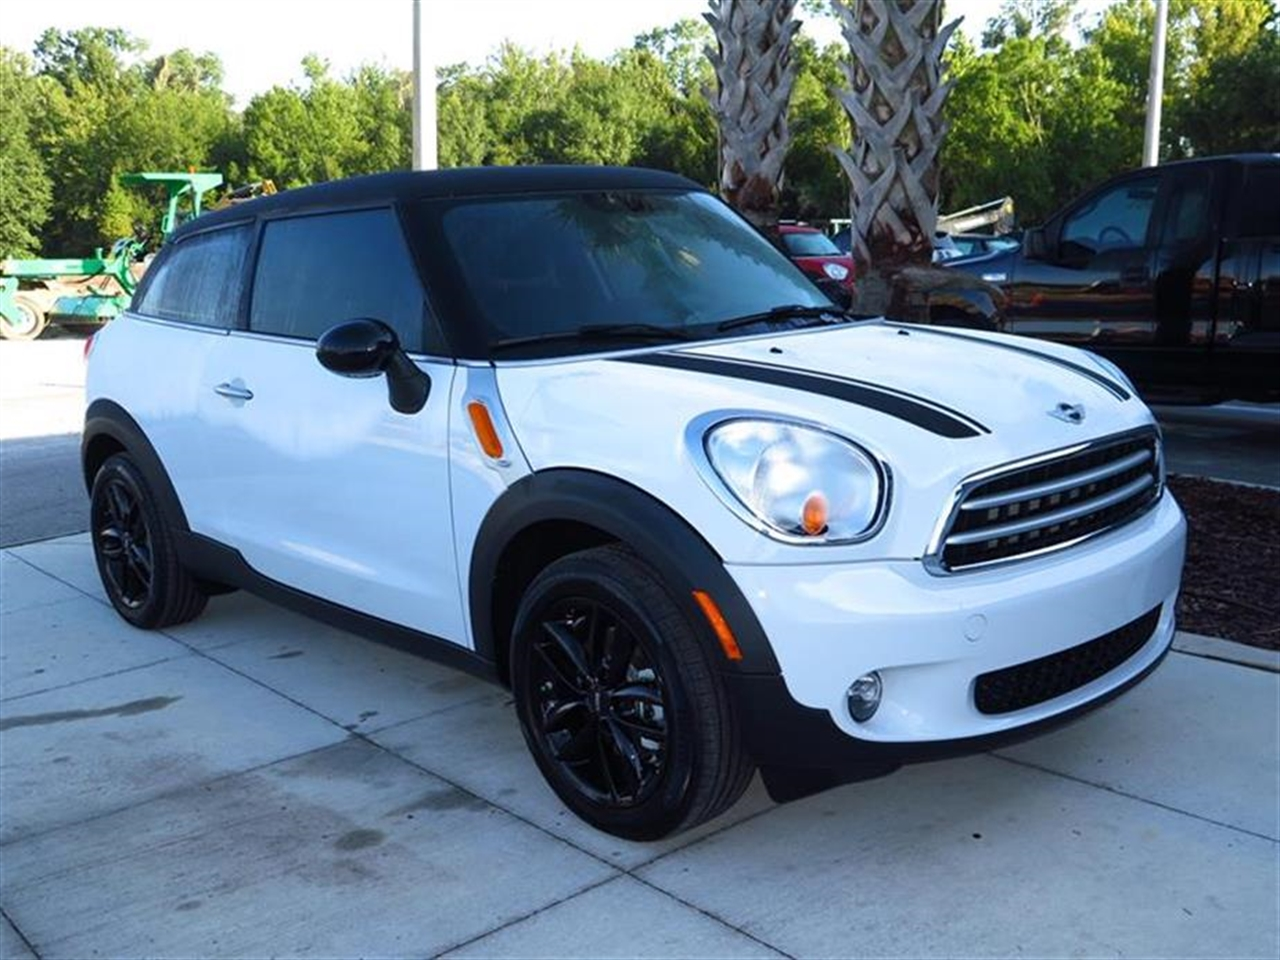 2015 MINI COOPER PACEMAN FWD 2dr 0 miles 2 Seatback Storage Pockets 3 12V DC Power Outlets 4 Per